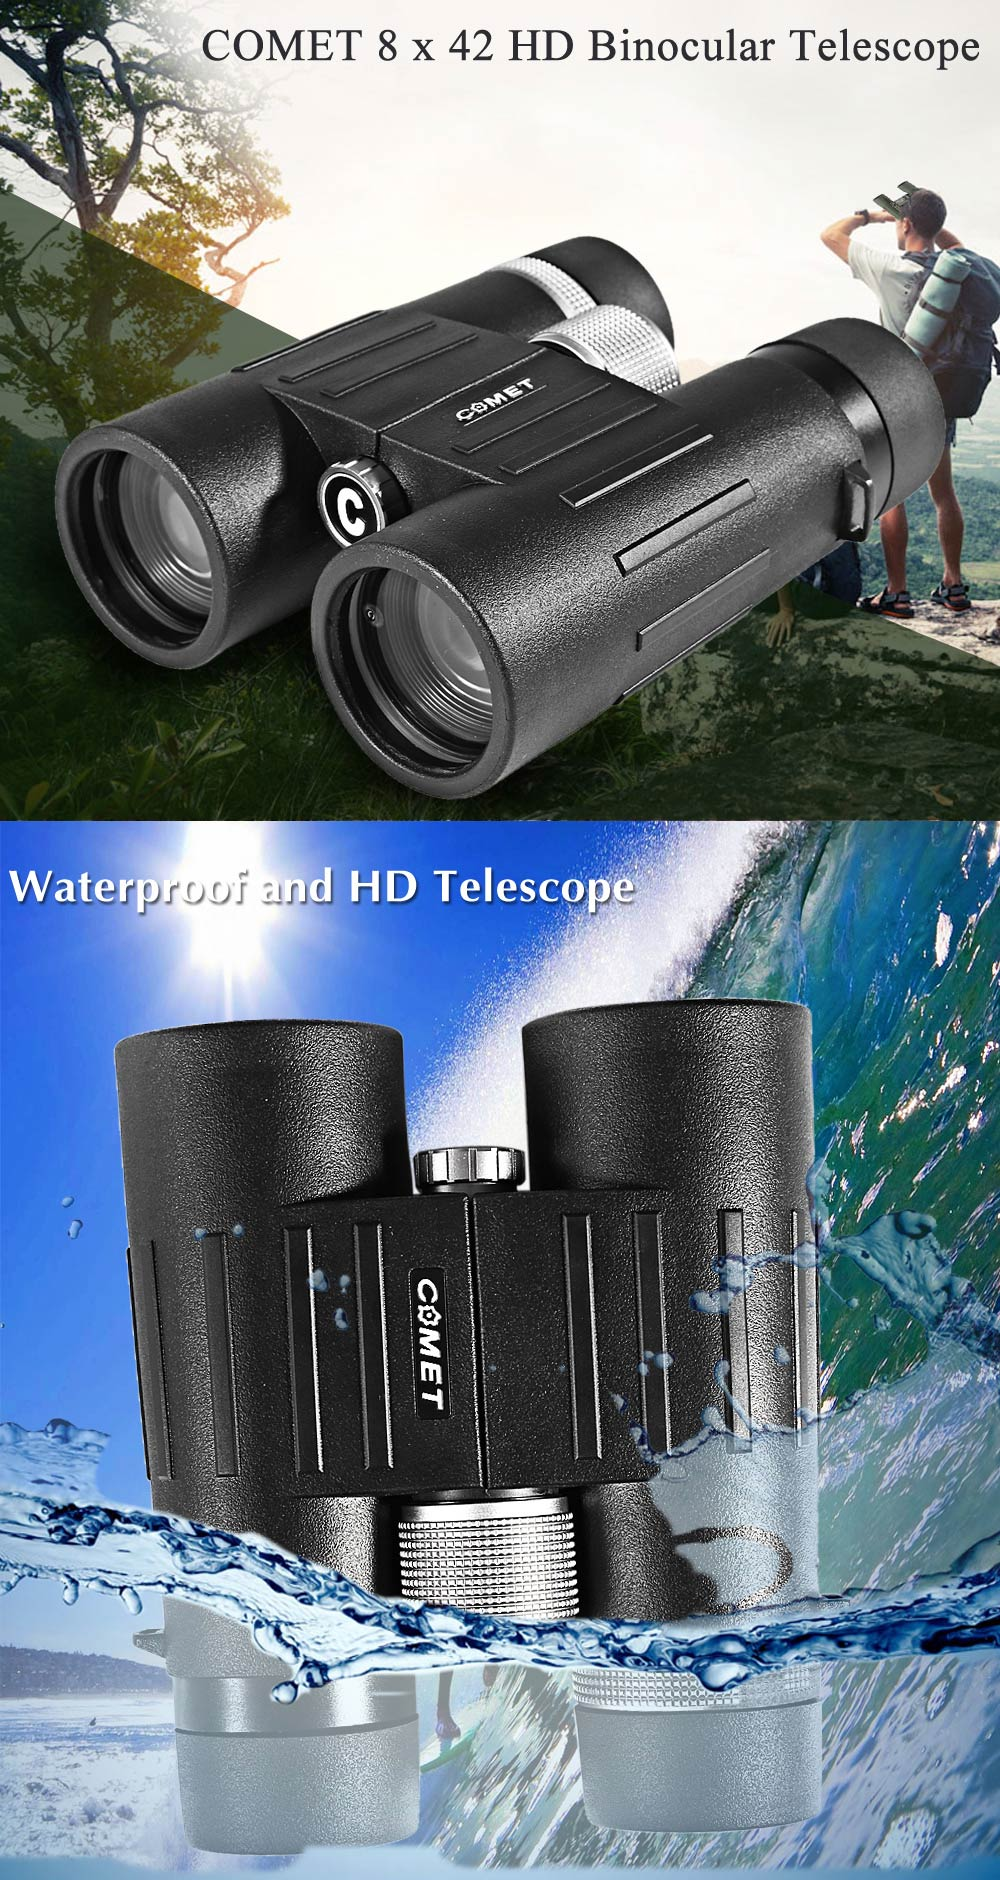 COMET AX18 - 08 x 42 HD Waterproof Binocular Telescope with Eye Cover for Tourism